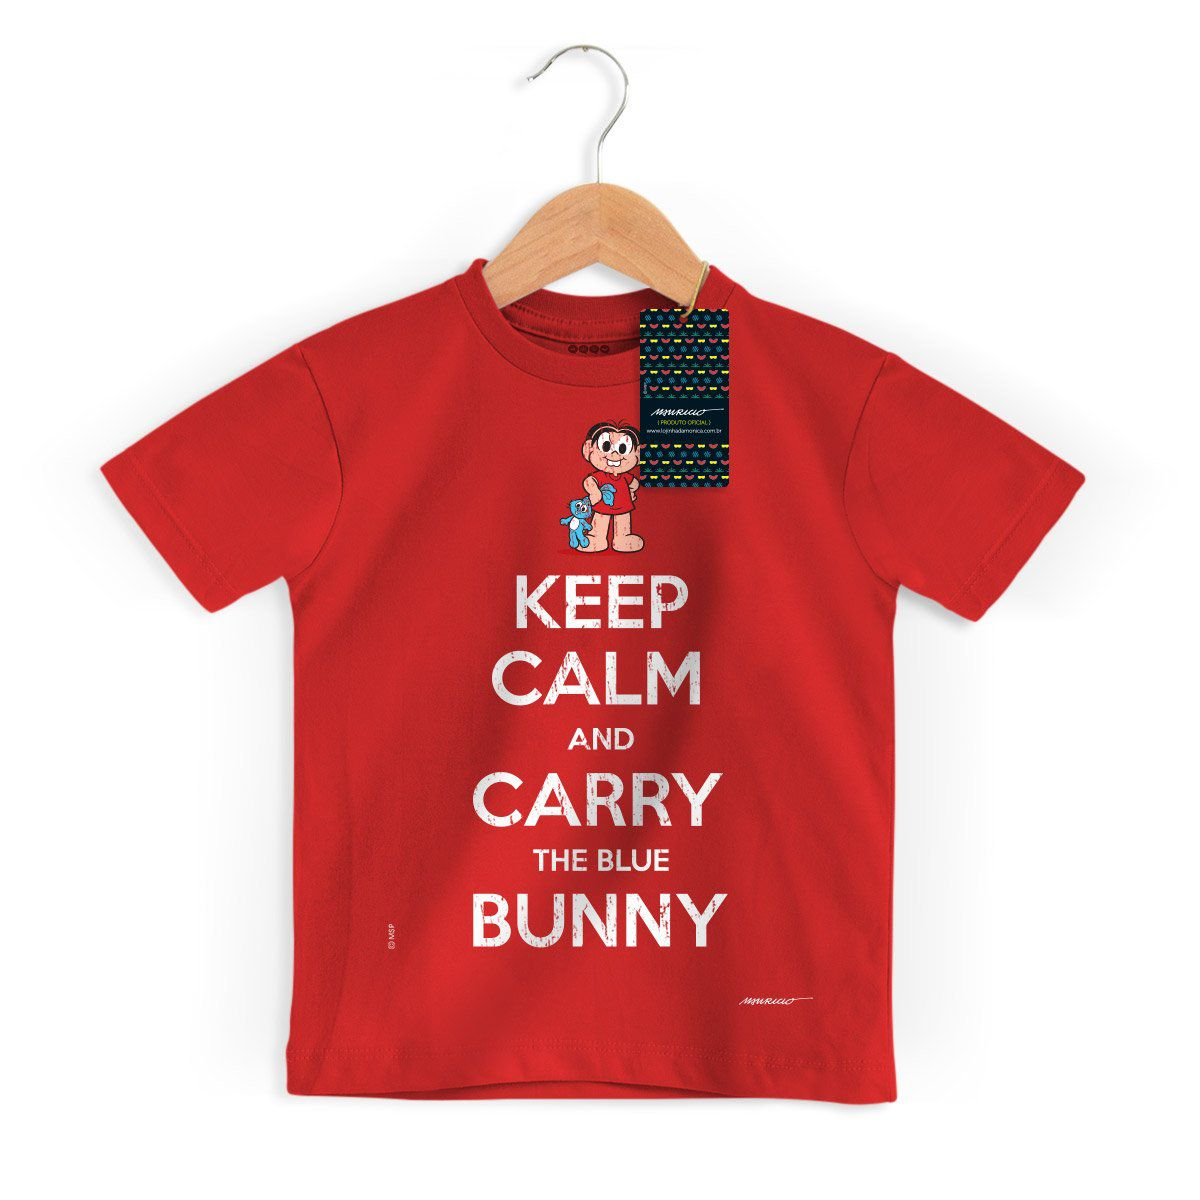 Camiseta Infantil Turma da Mônica Cool Keep Calm And Carry The Blue Bunny